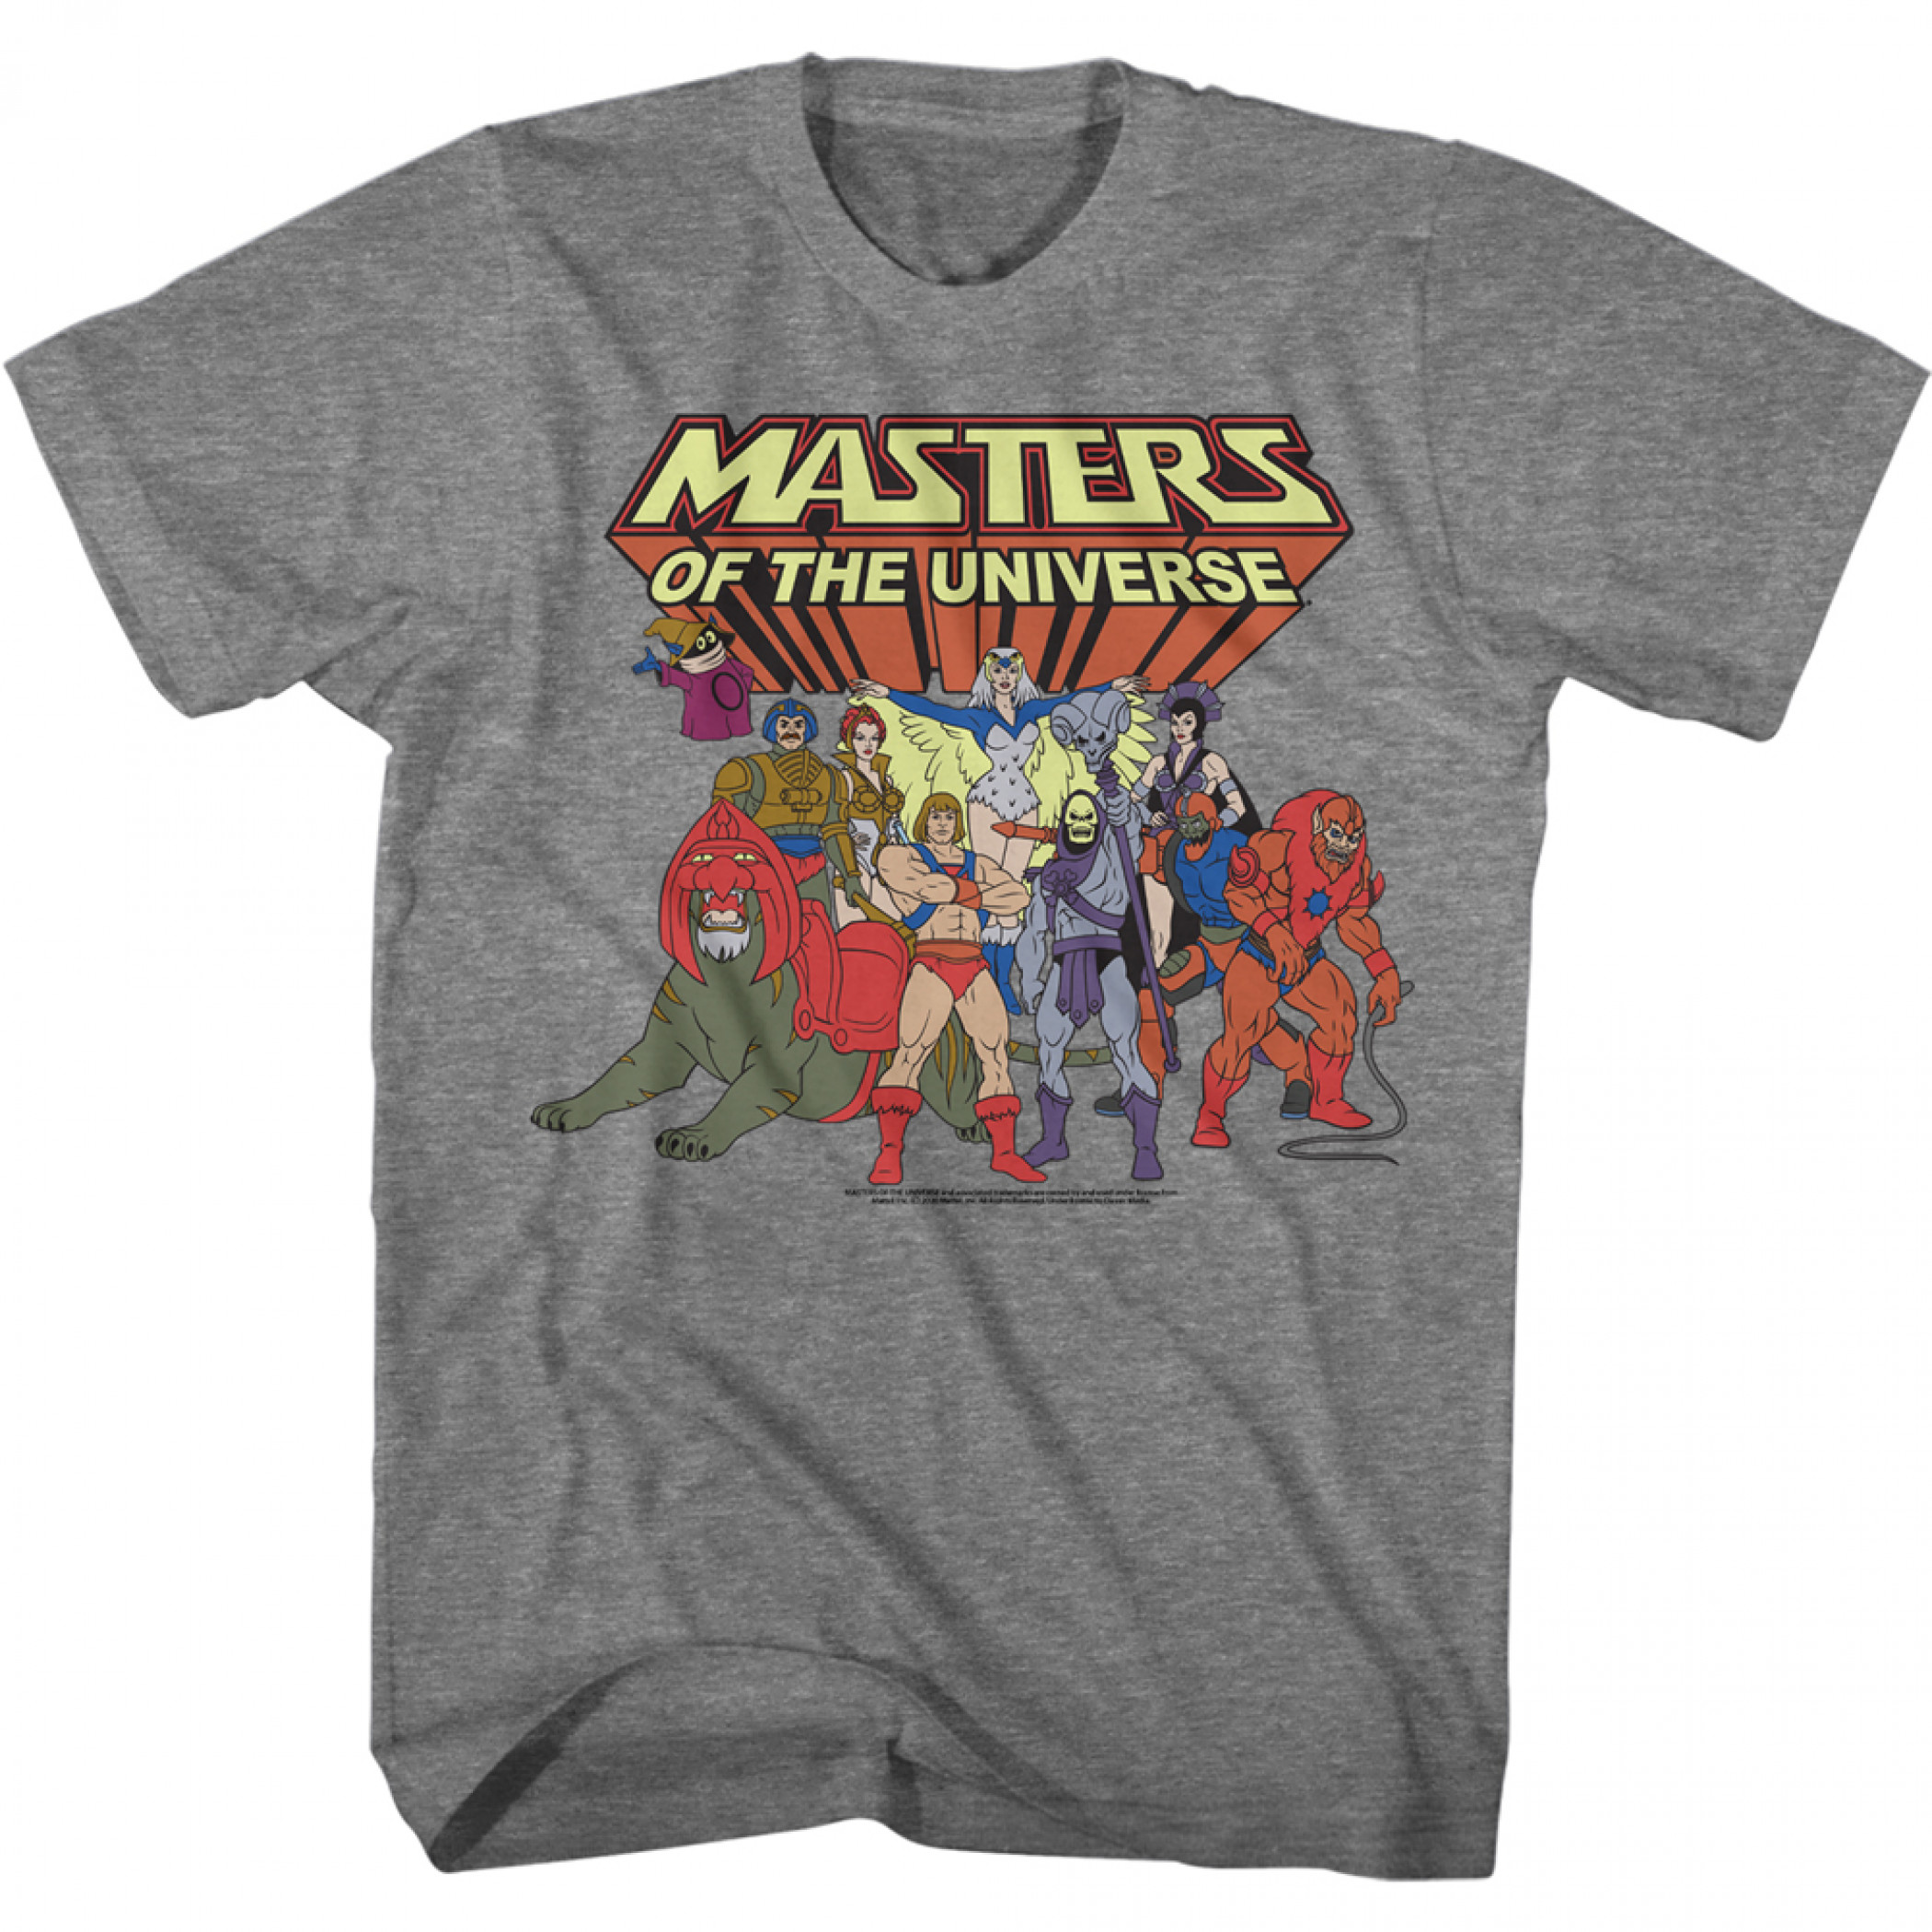 Masters of the Universe He-Man Heroes and Villains Cast T-Shirt